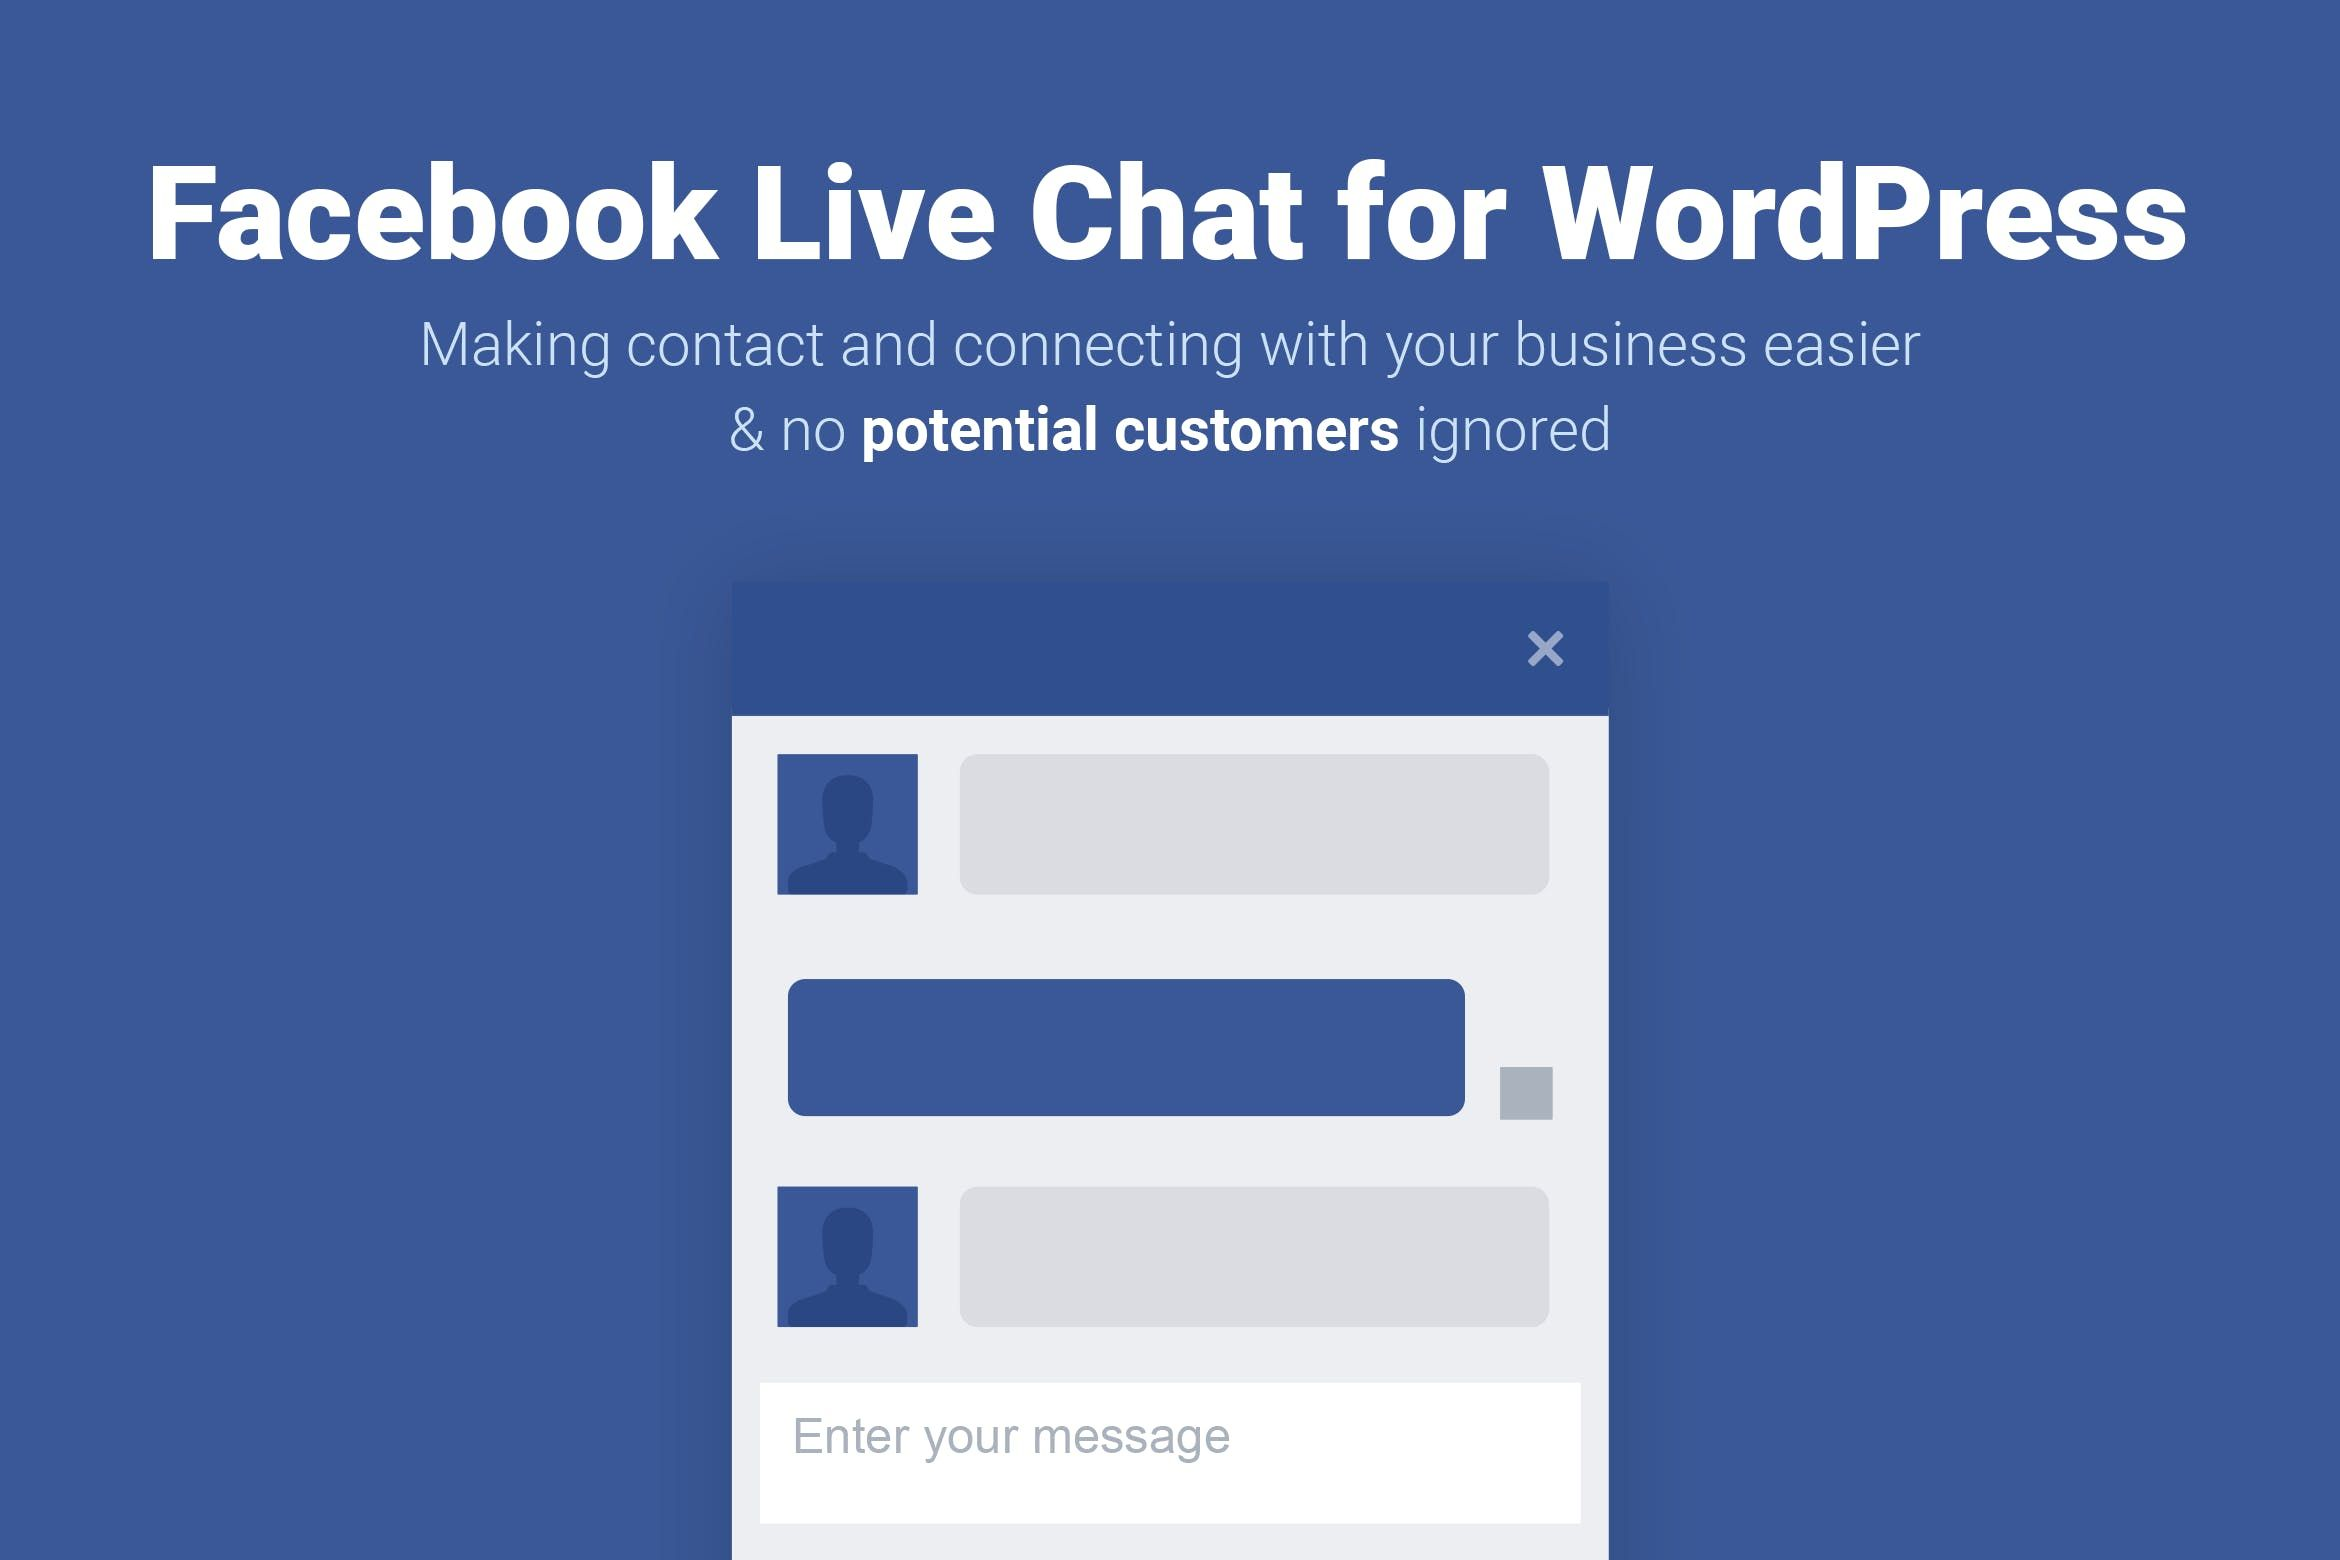 Facebook Live Chat for WordPress #chat, #facebook, #facebook